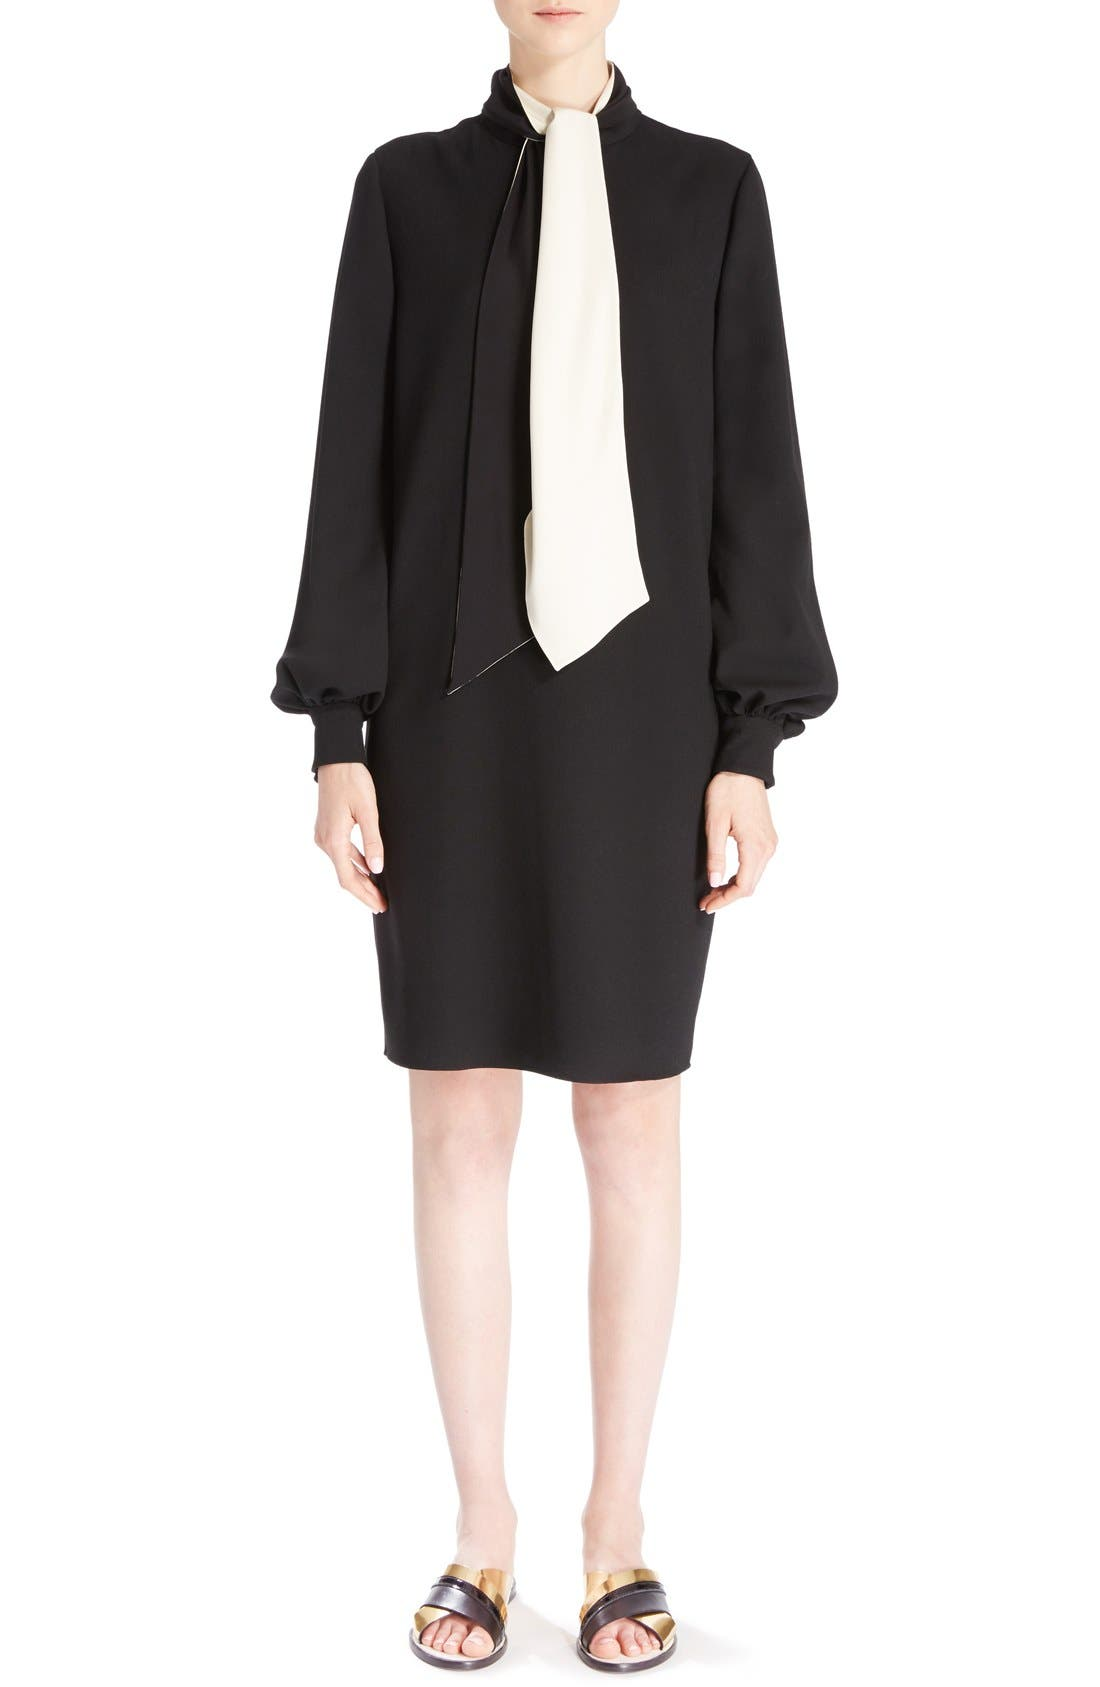 Lanvin Wool Crepe Dress with Detachable Scarf